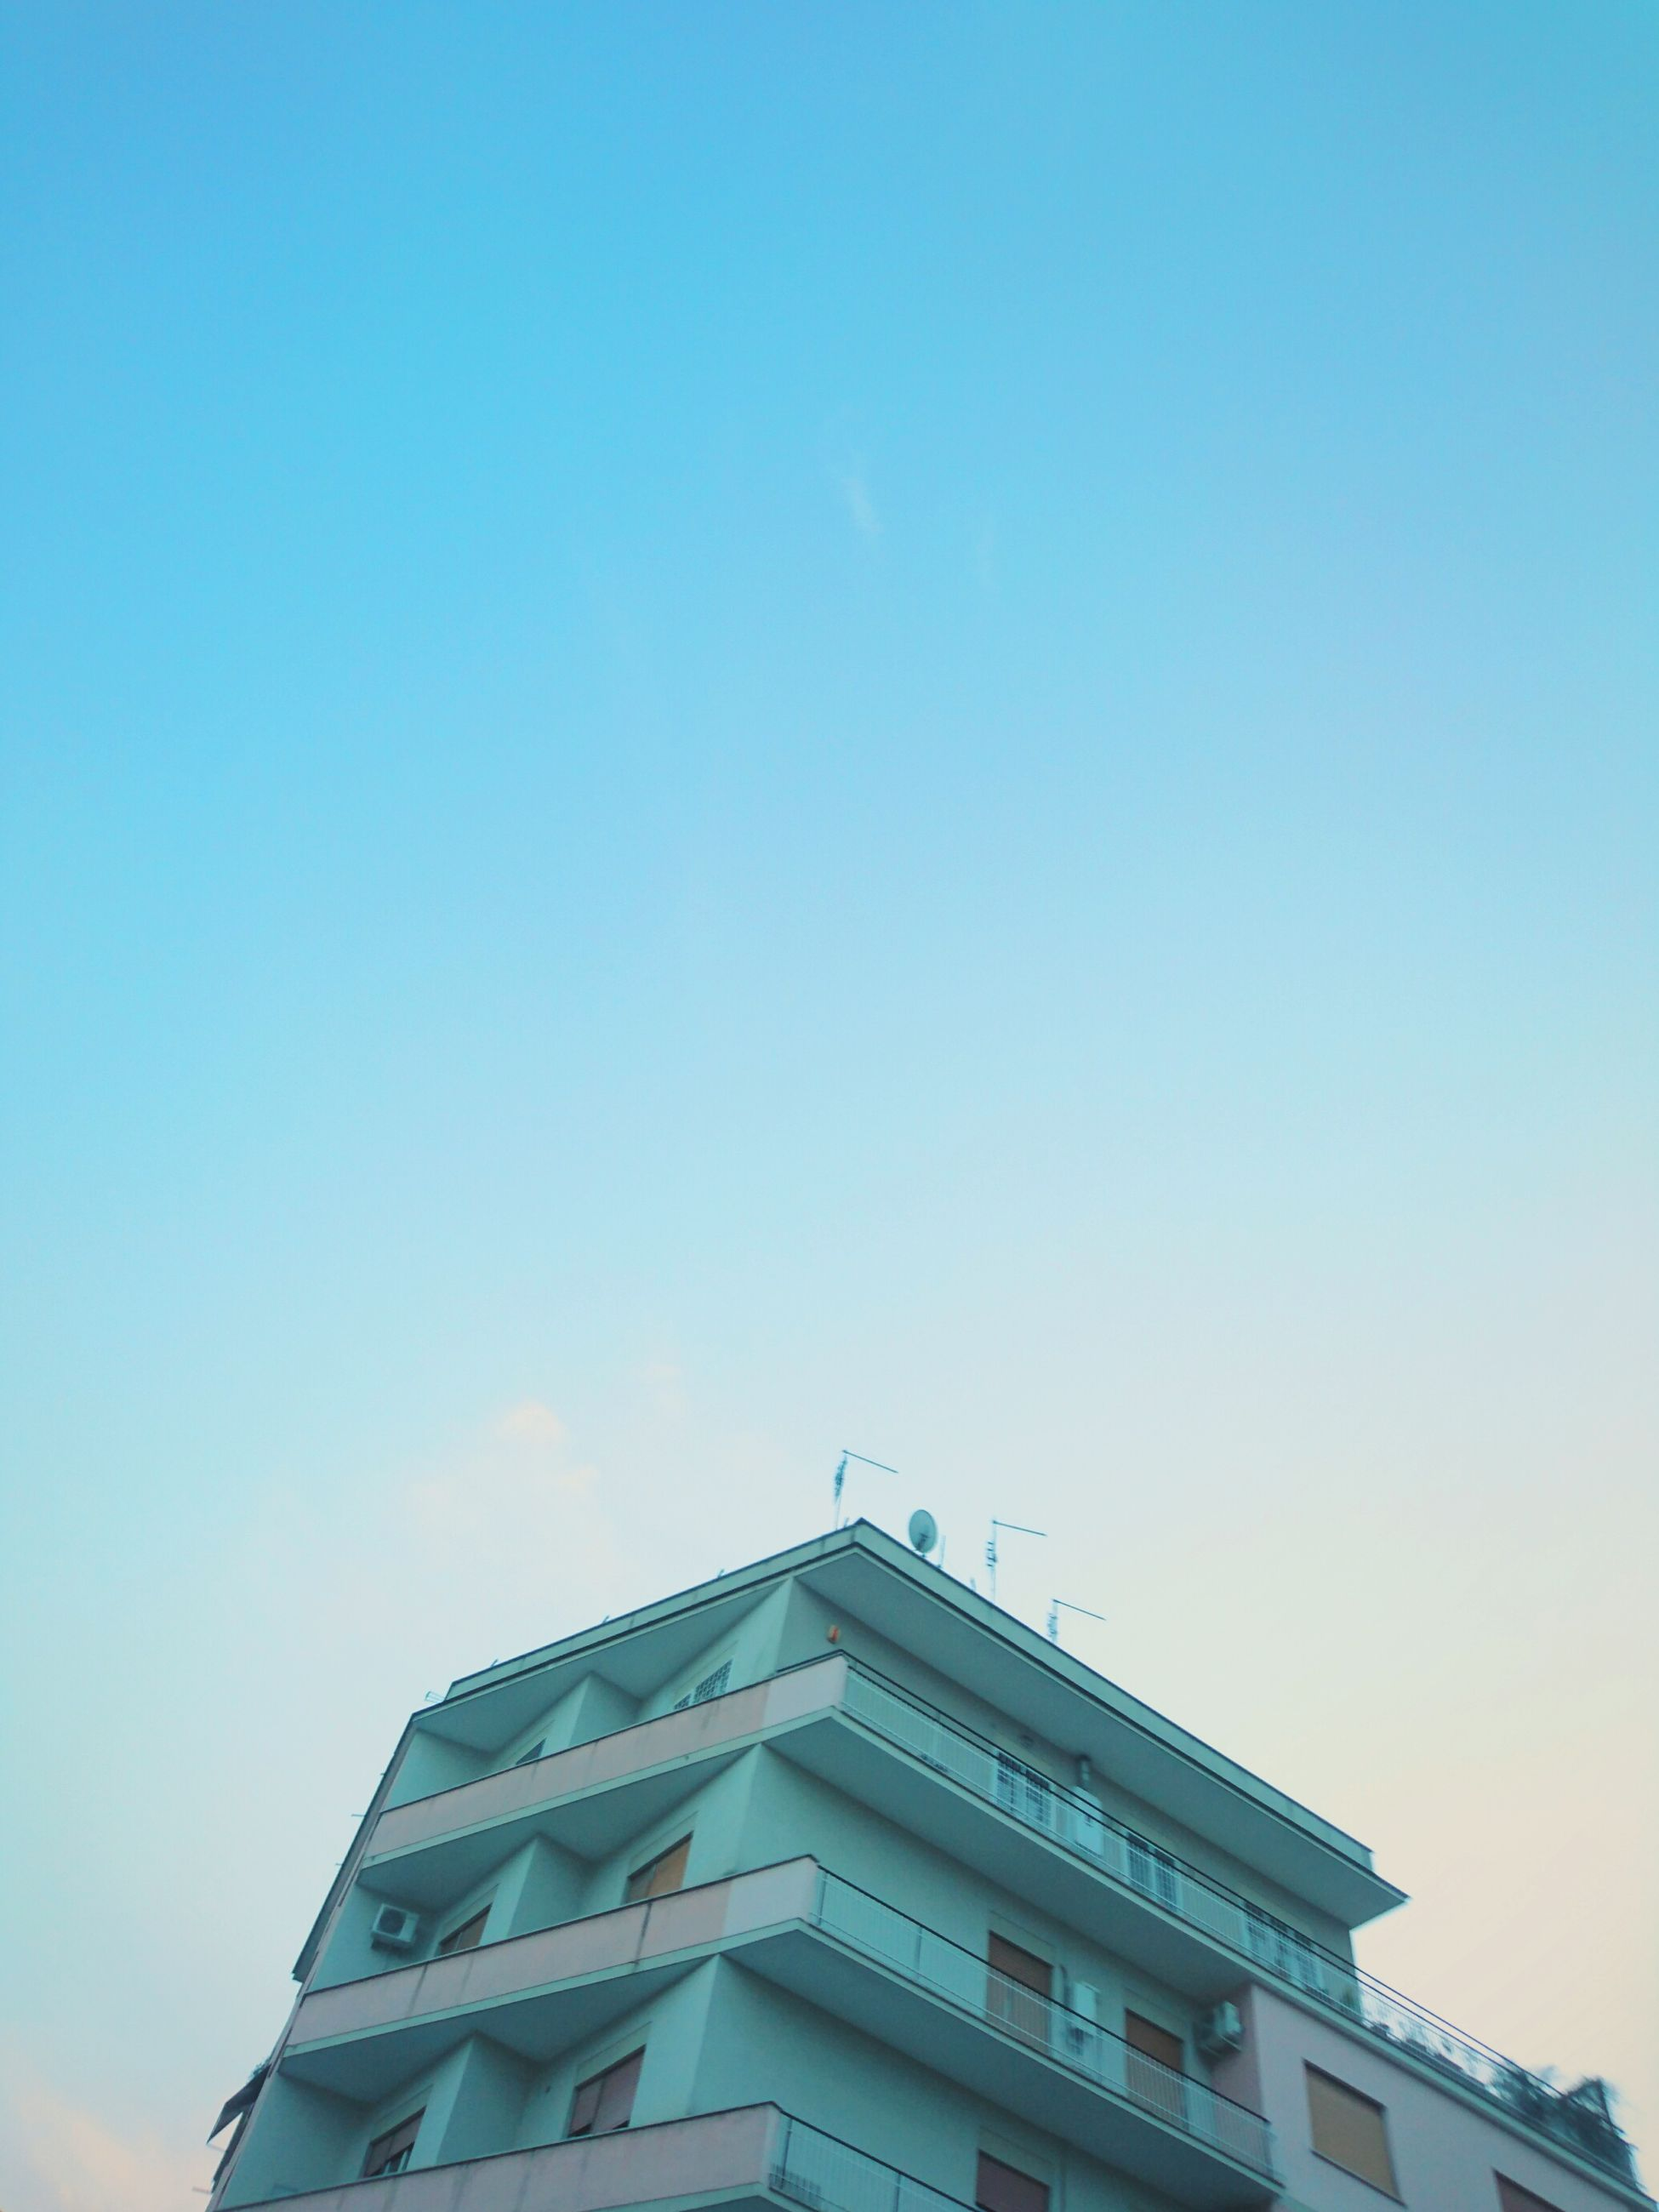 architecture, building exterior, built structure, low angle view, clear sky, copy space, city, blue, building, high section, sky, modern, office building, day, outdoors, residential building, tower, tall - high, no people, residential structure